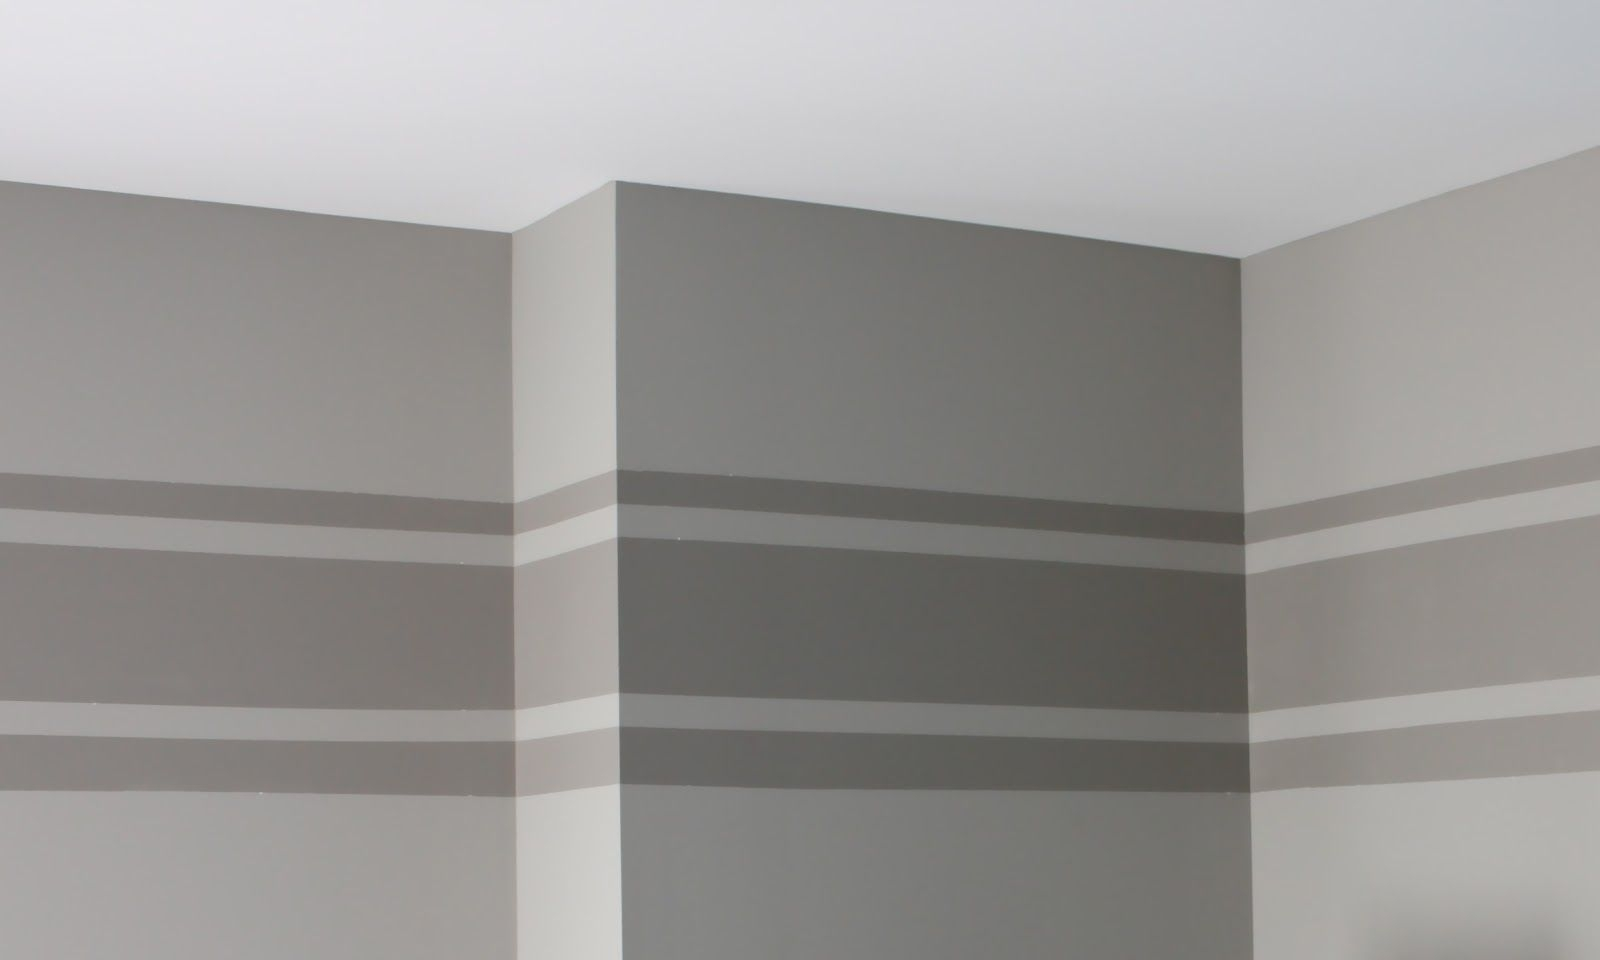 Horizontal Stripe On Wall | First, I Had The Room Painted With The For 2017 Horizontal Stripes Wall Accents (Gallery 5 of 15)